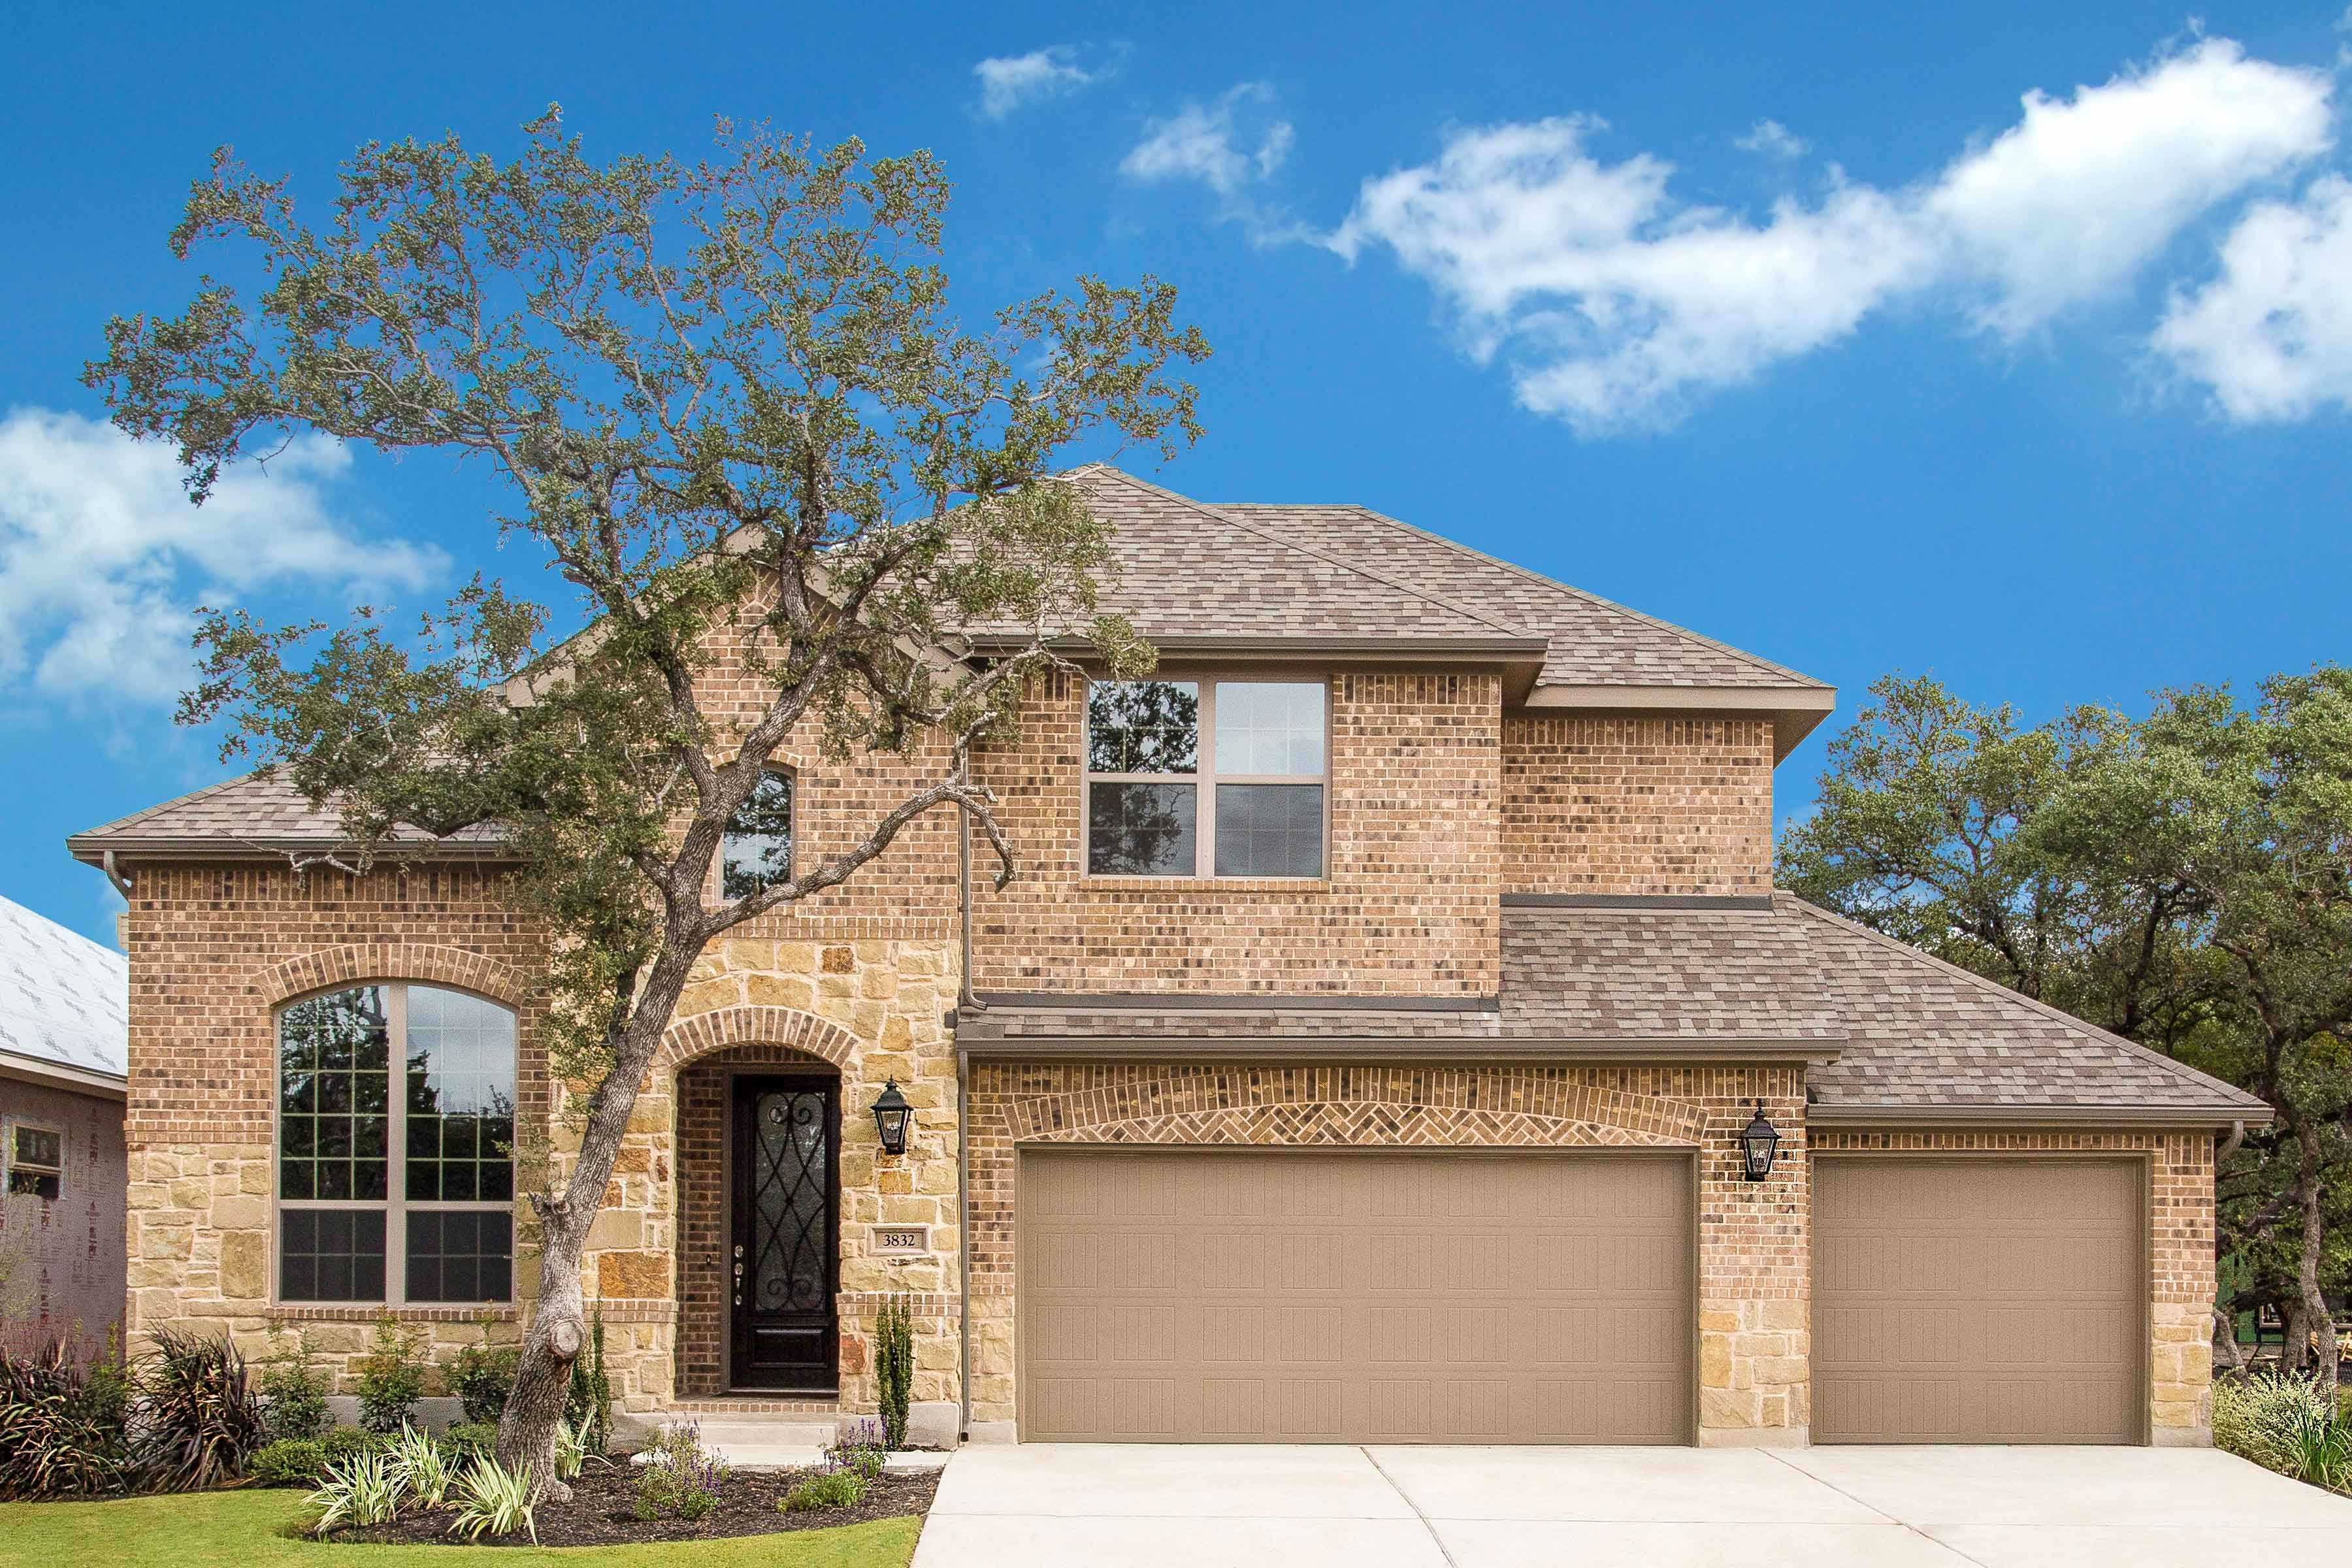 3815 ashbury road round rock tx new home for sale